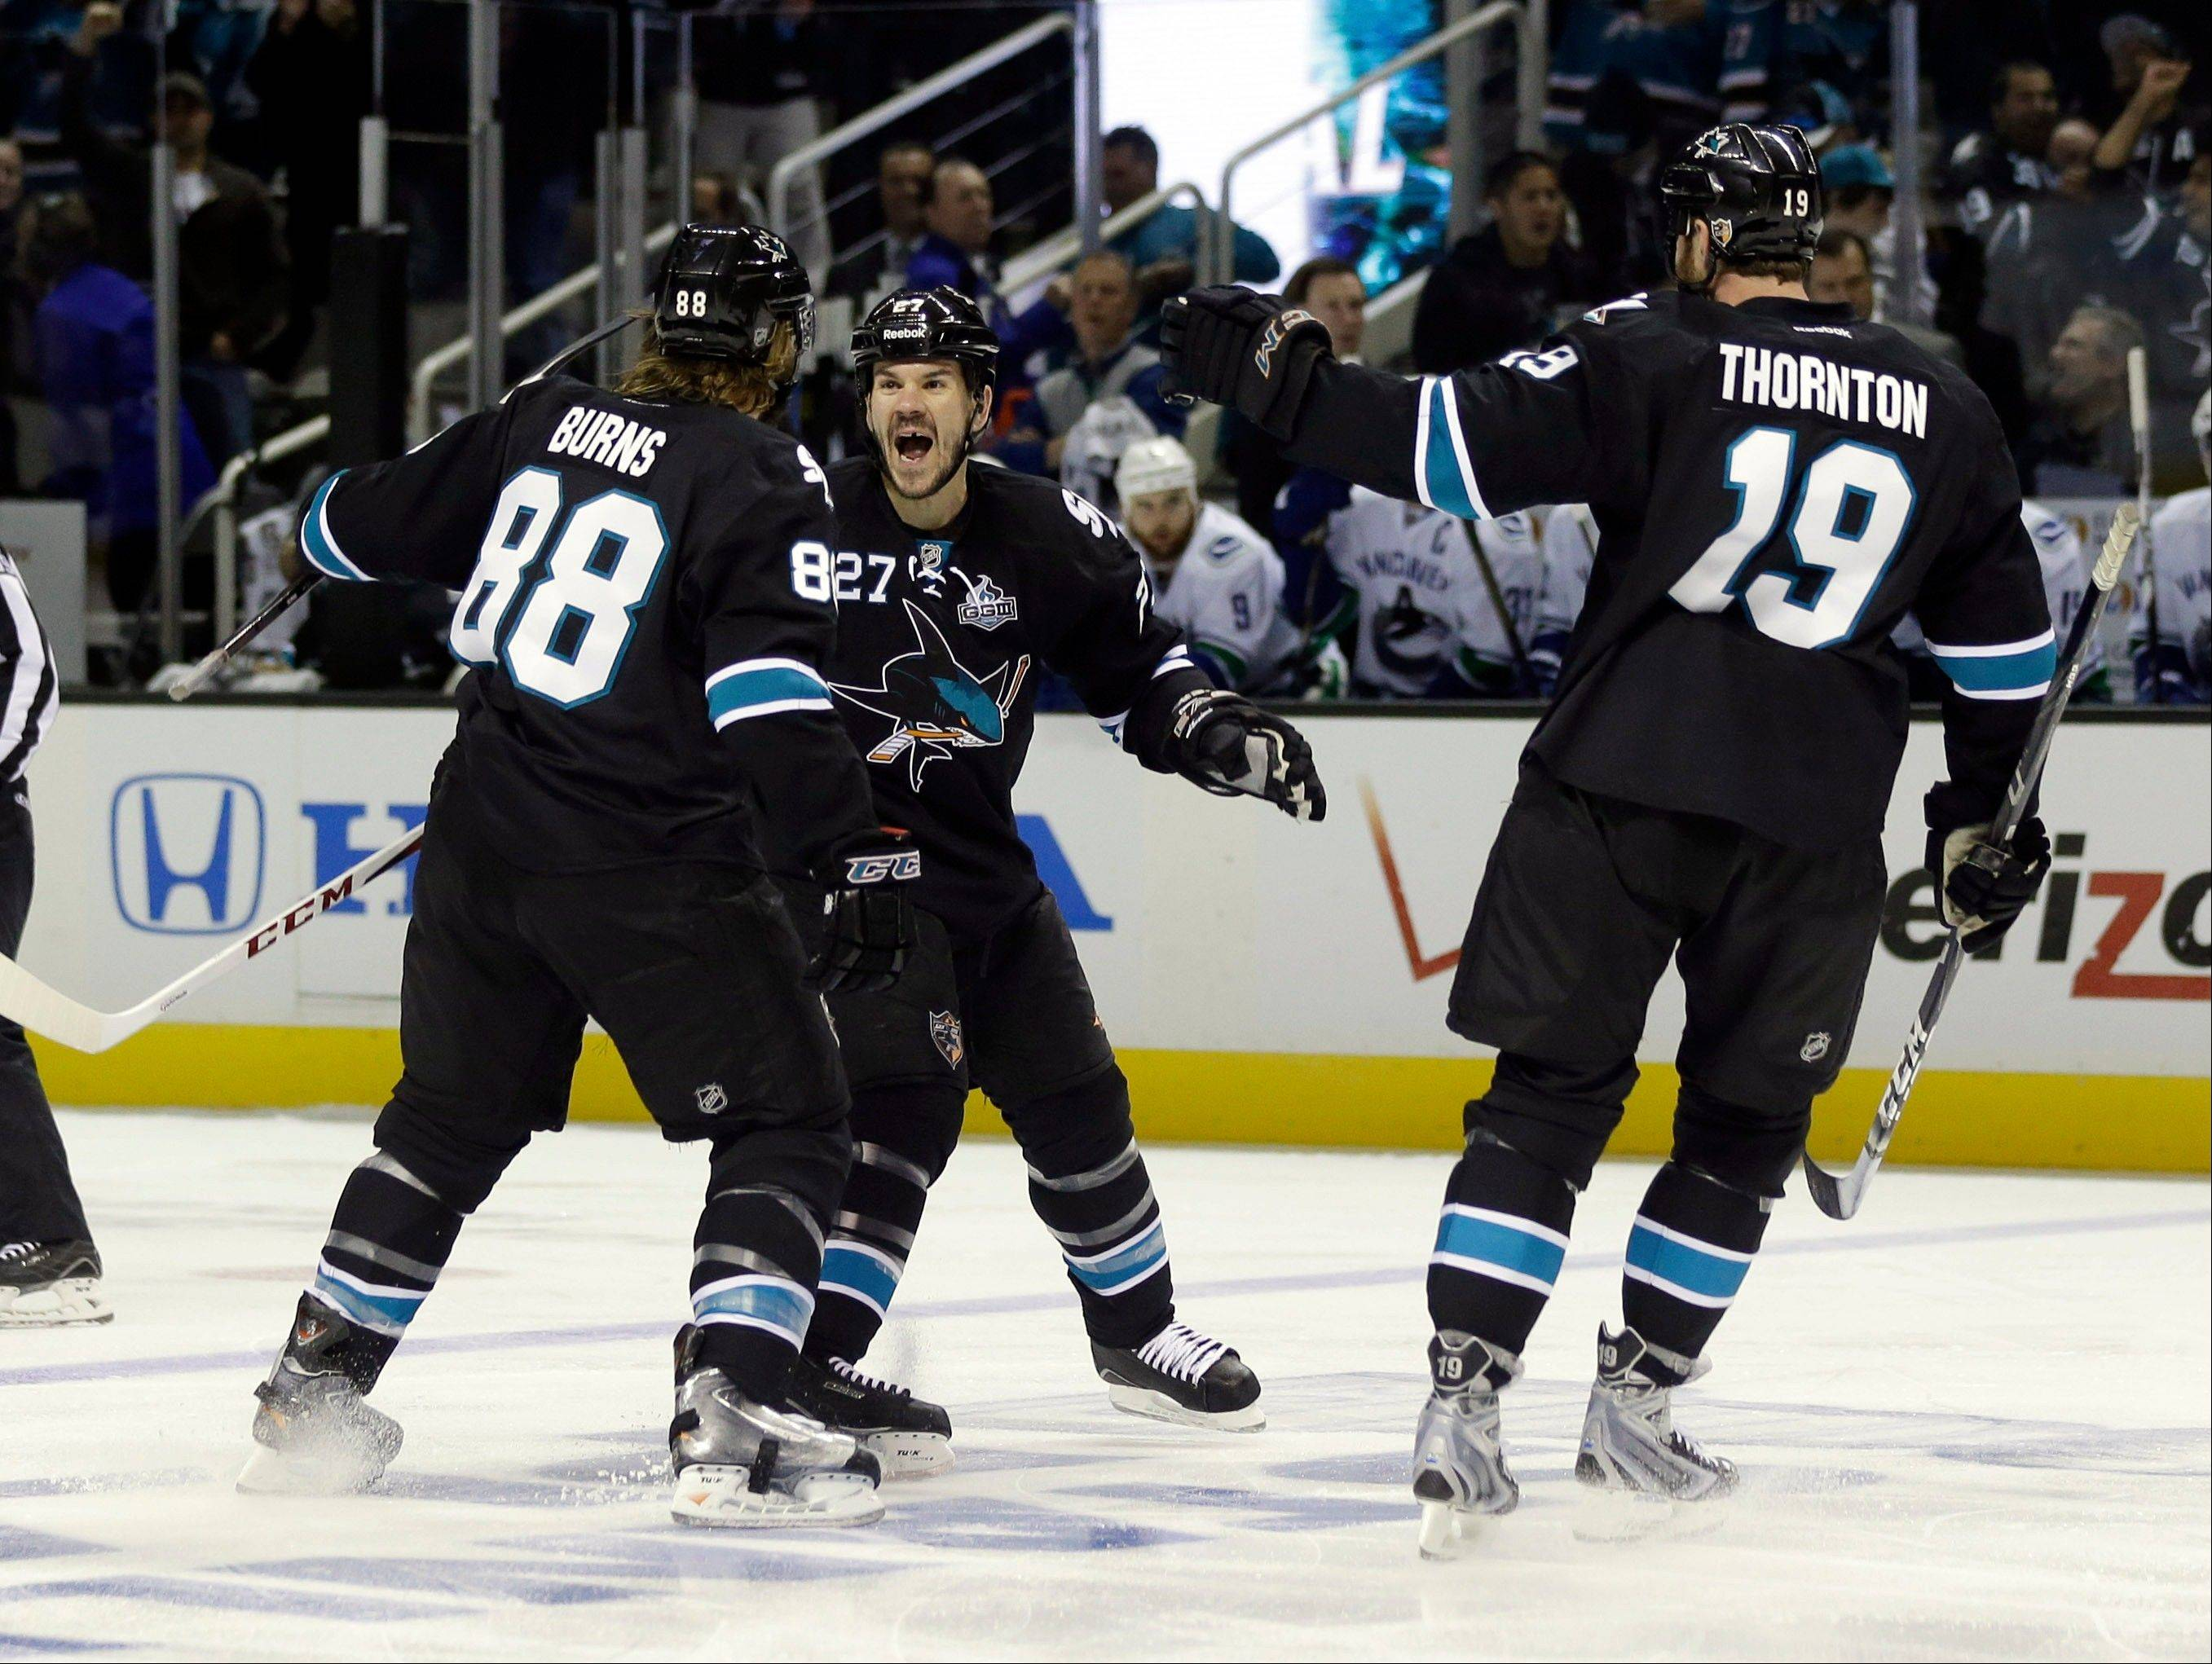 San Jose Sharks defenseman Brent Burns (88) celebrates his goal with teammates Scott Hannan, center, and Joe Thornton (19) during the first period of Game 4 of their first-round NHL hockey Stanley Cup playoff series in San Jose, Calif., Tuesday, May 7, 2013.